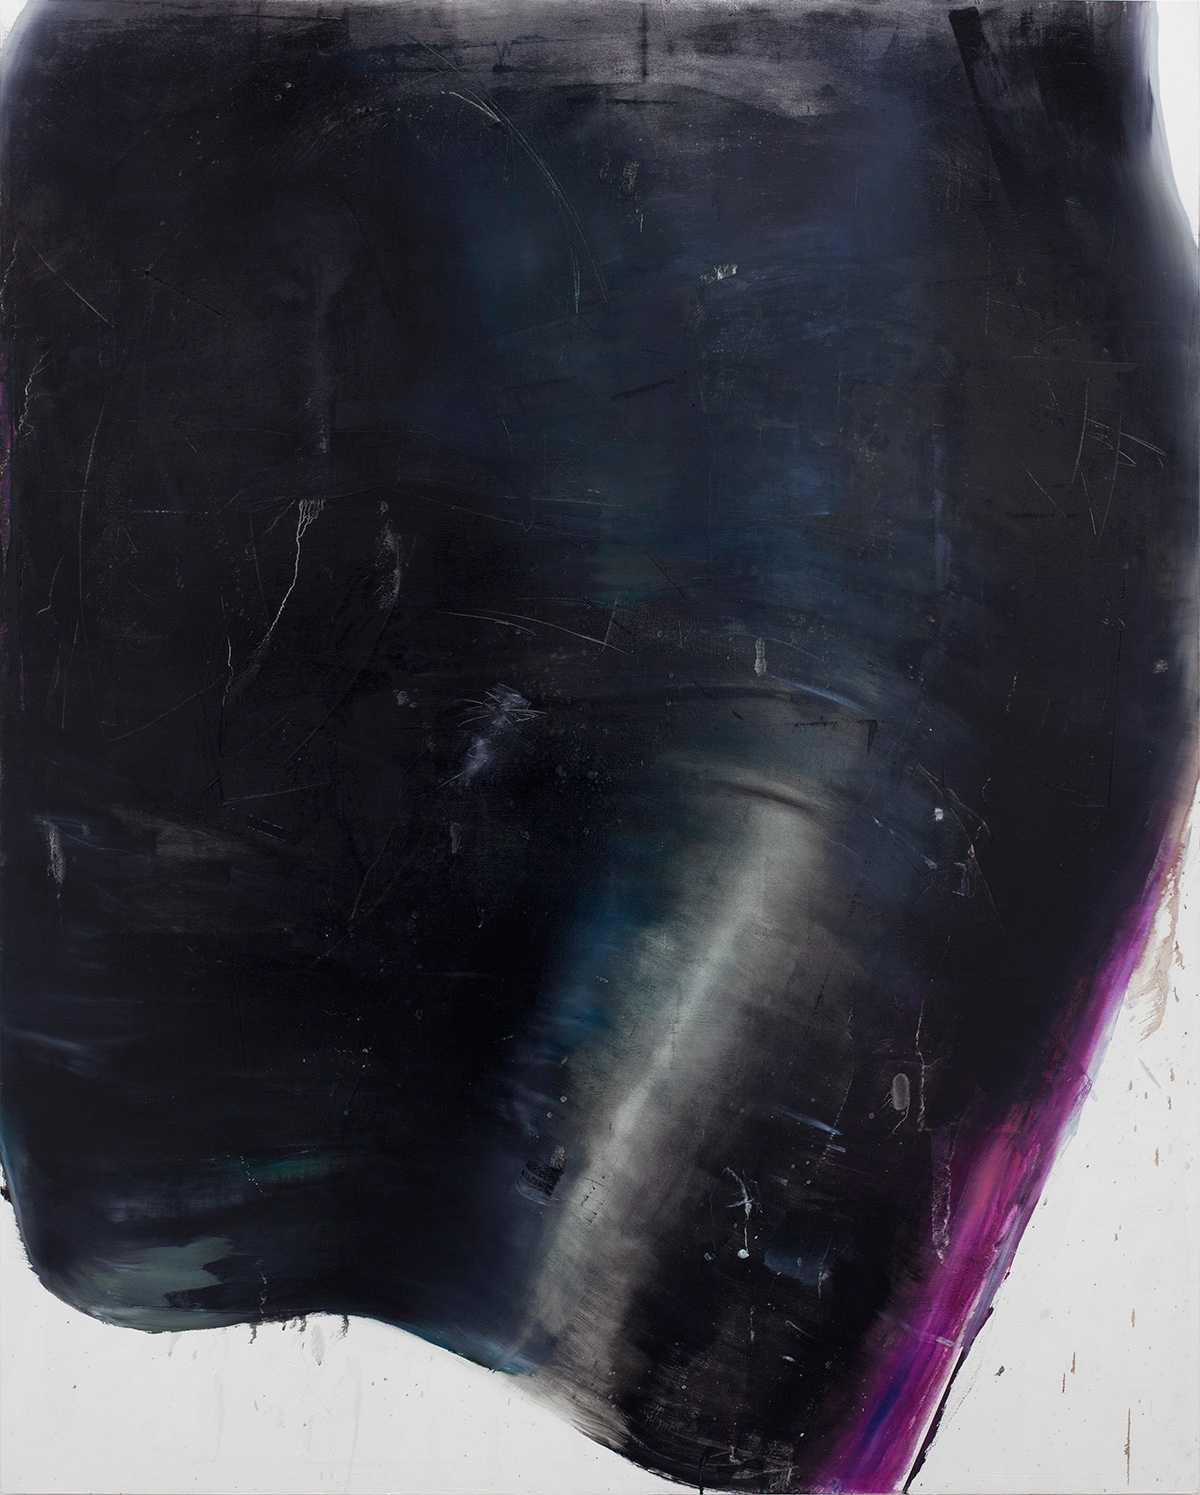 Corona, 2015, oil on canvas, 200 x 165 cm